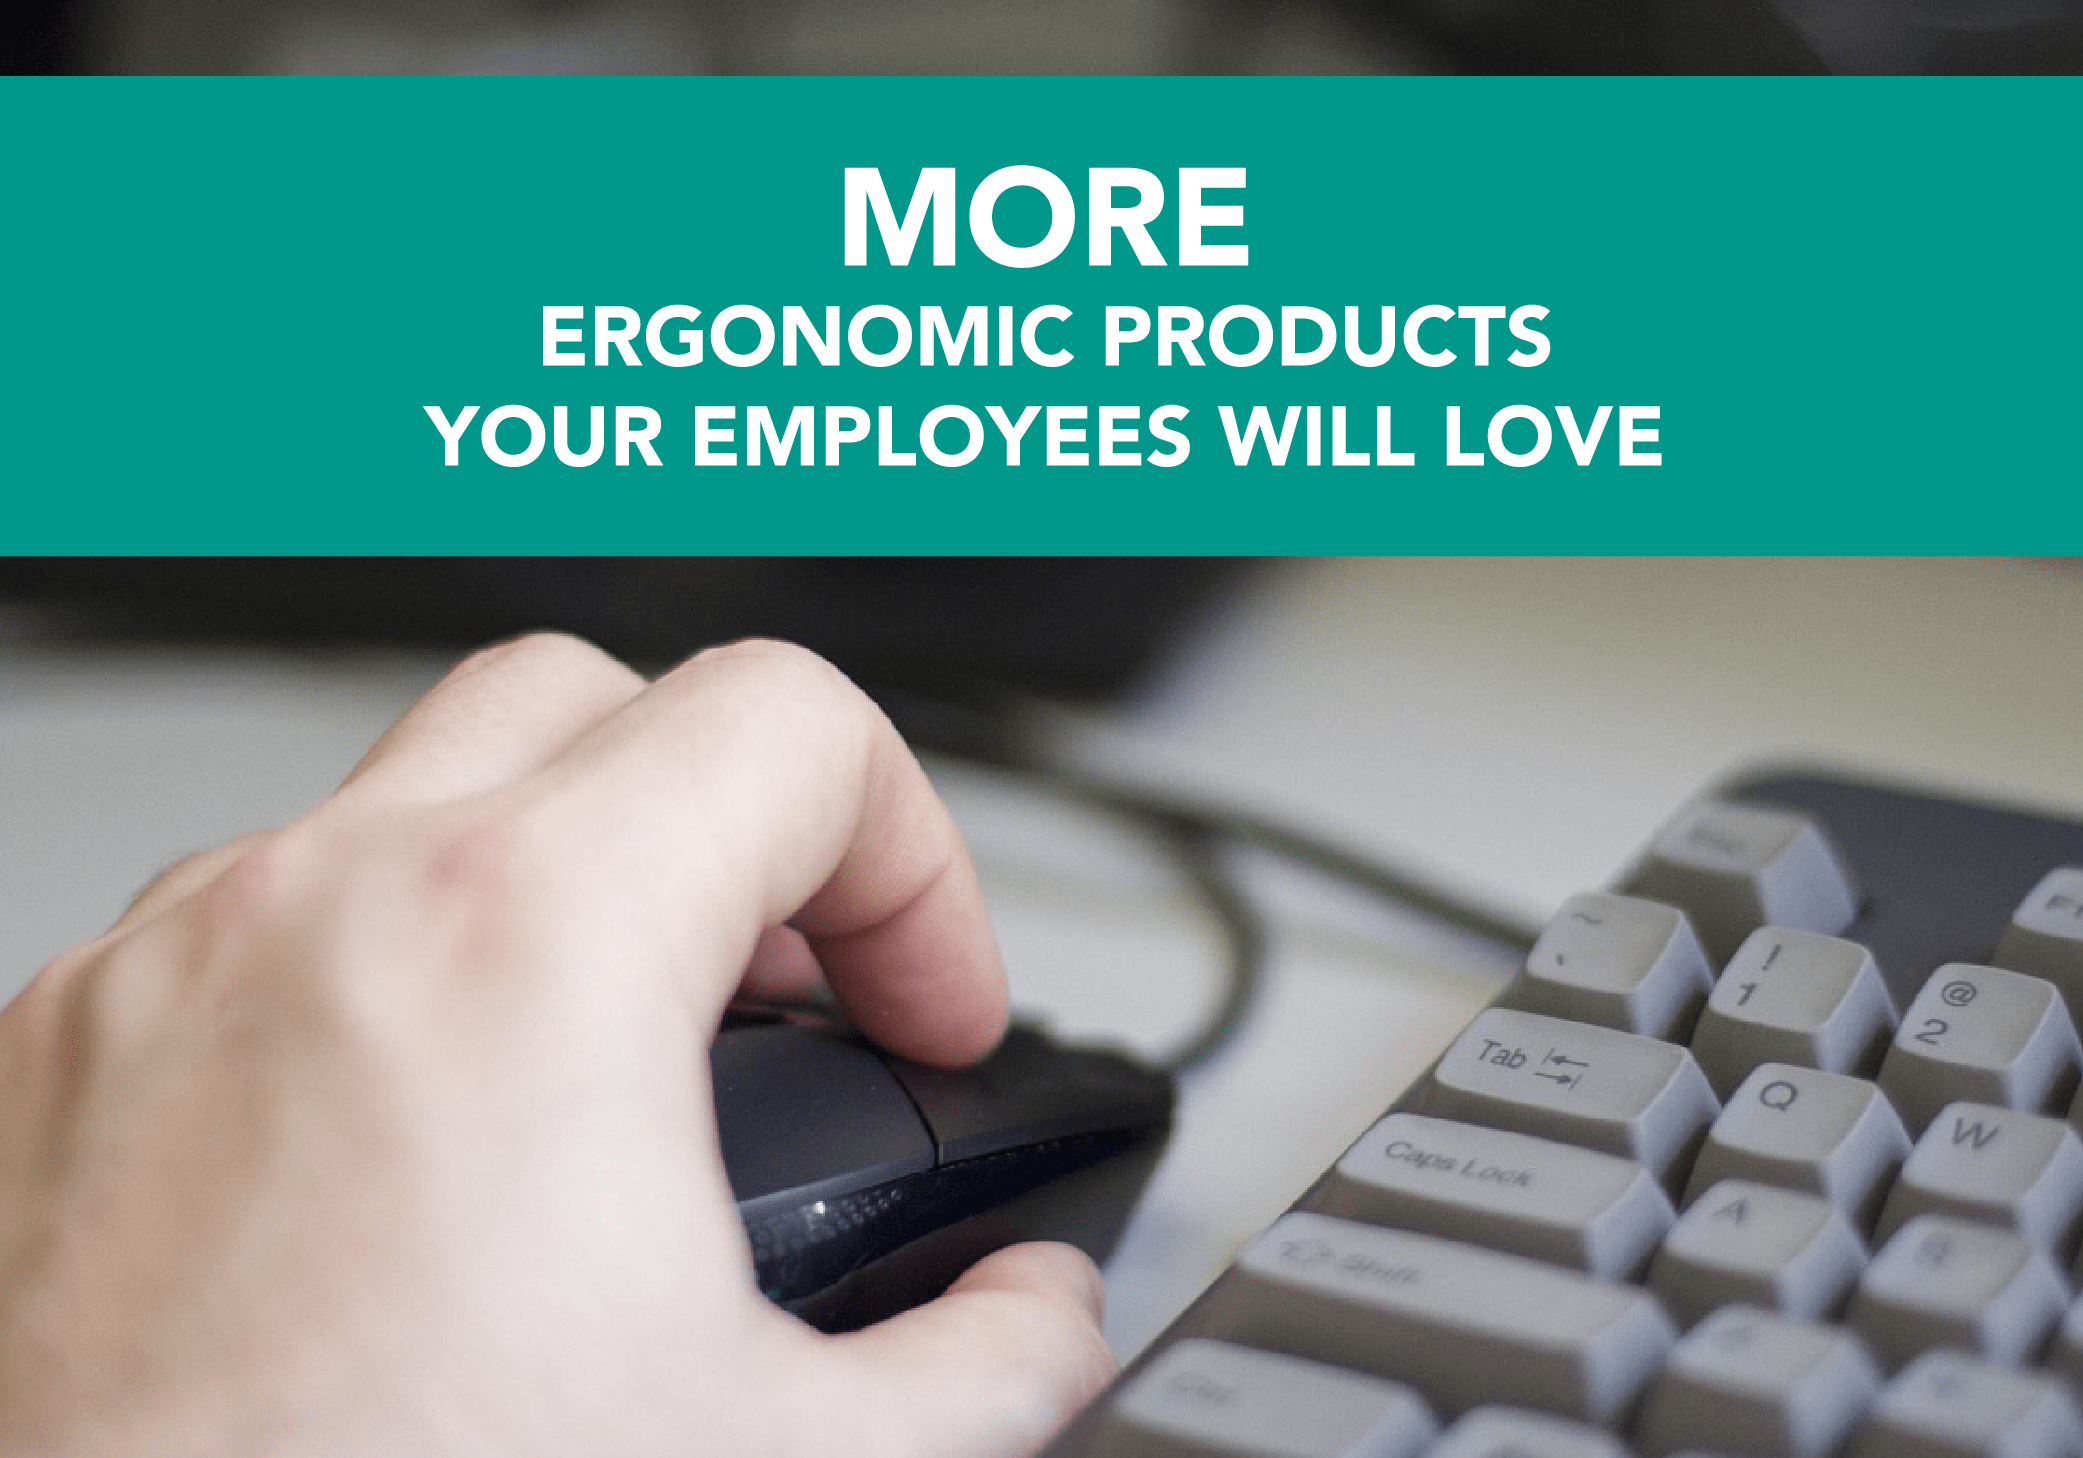 (More) Ergonomic Products your Employees Will Love